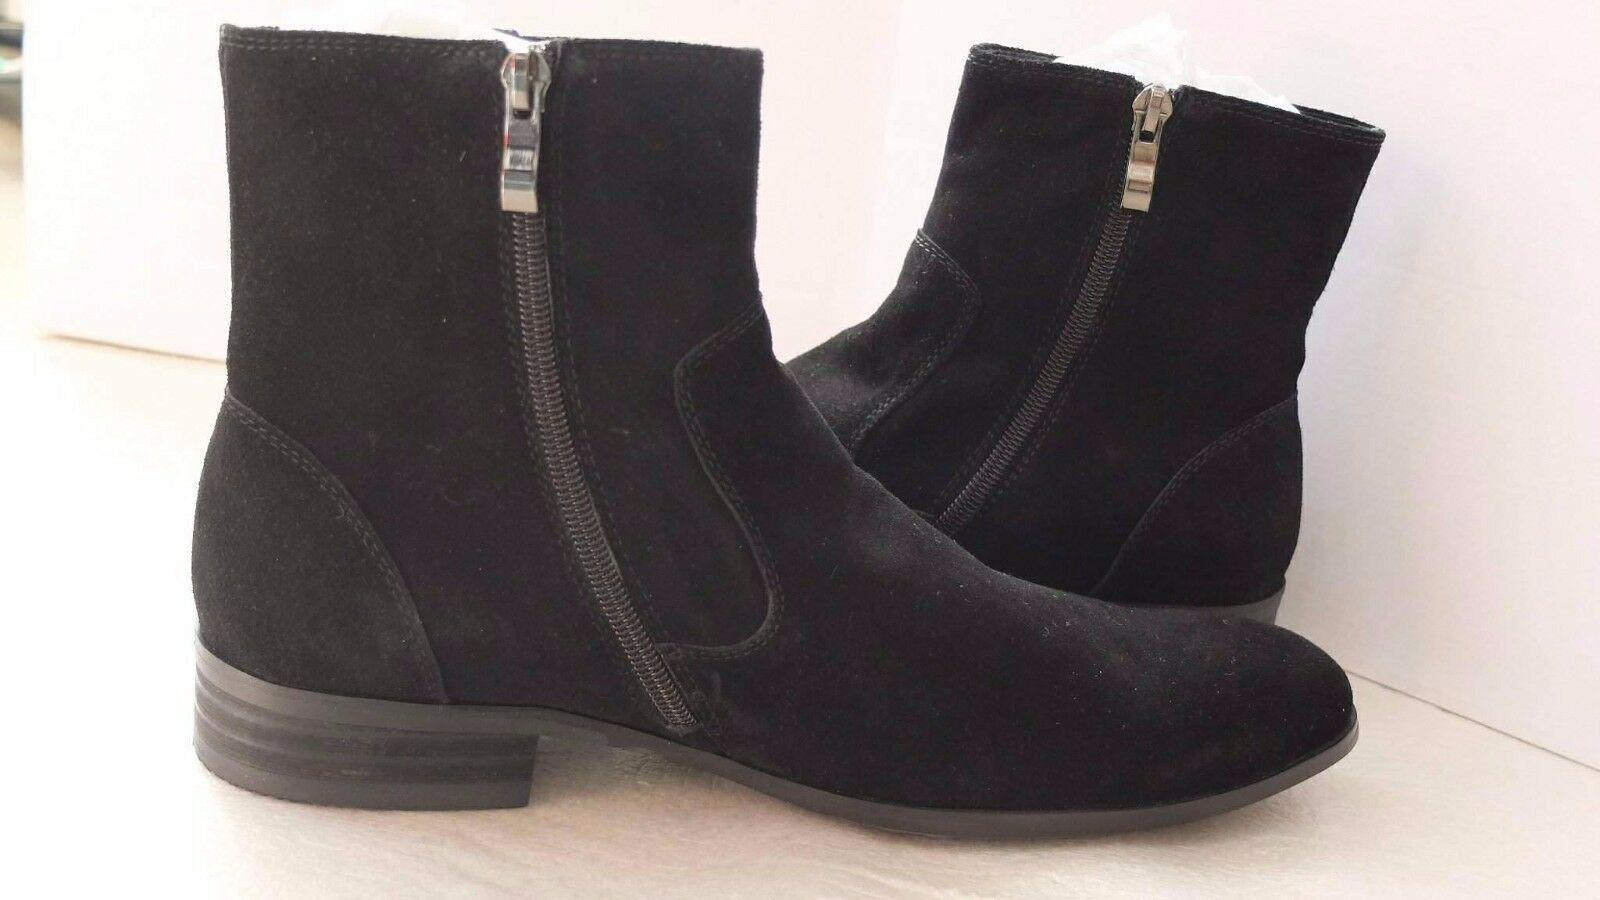 Noex 39 men's black suede boots size 39 Noex (5UK)* 9e6ff7